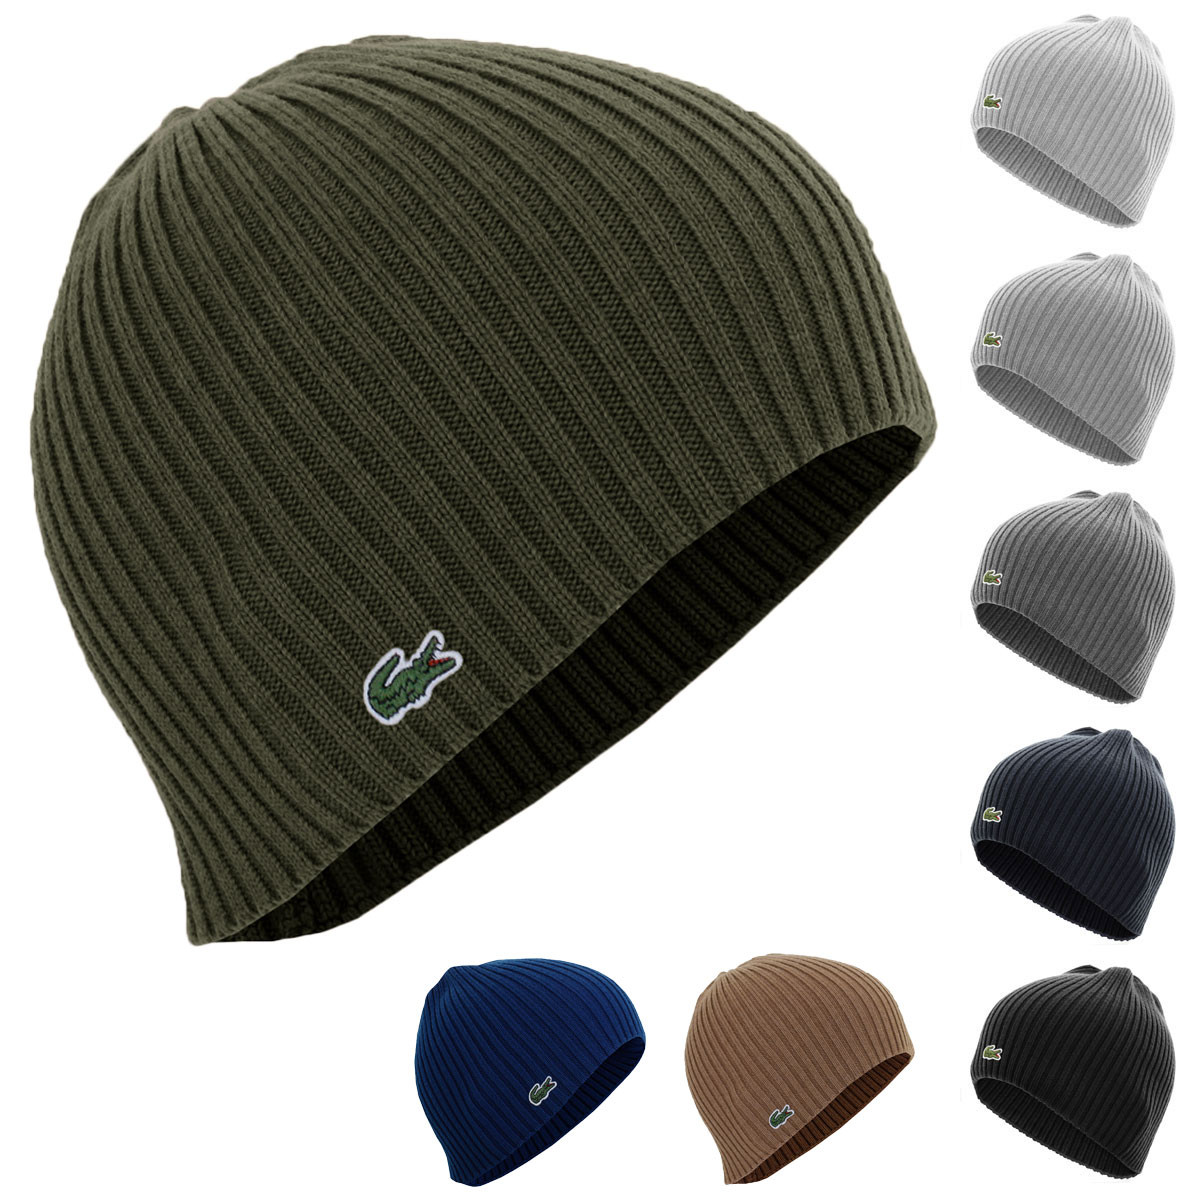 1377f663604 ... Lacoste Mens Ribbed Wool Beanie Hat.   Back. RB3504